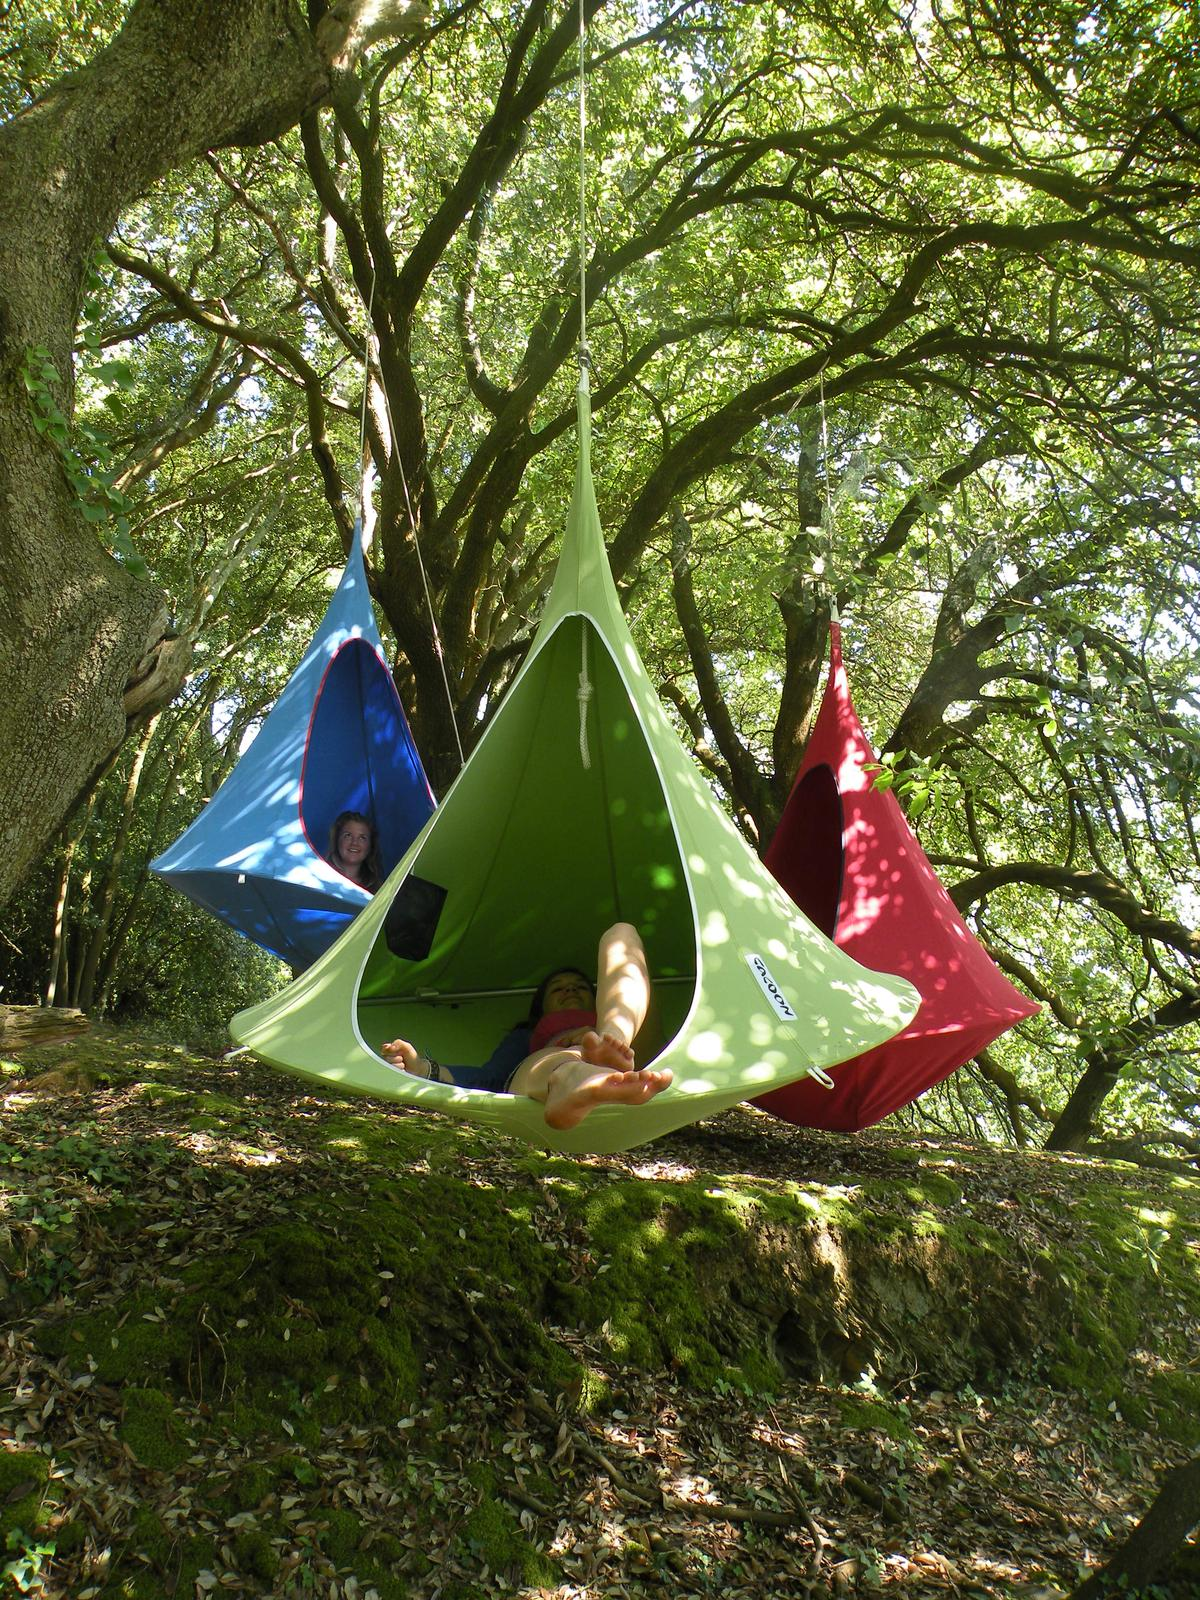 Cacoon is a hanging fabric treehouse designed for adults and children alike